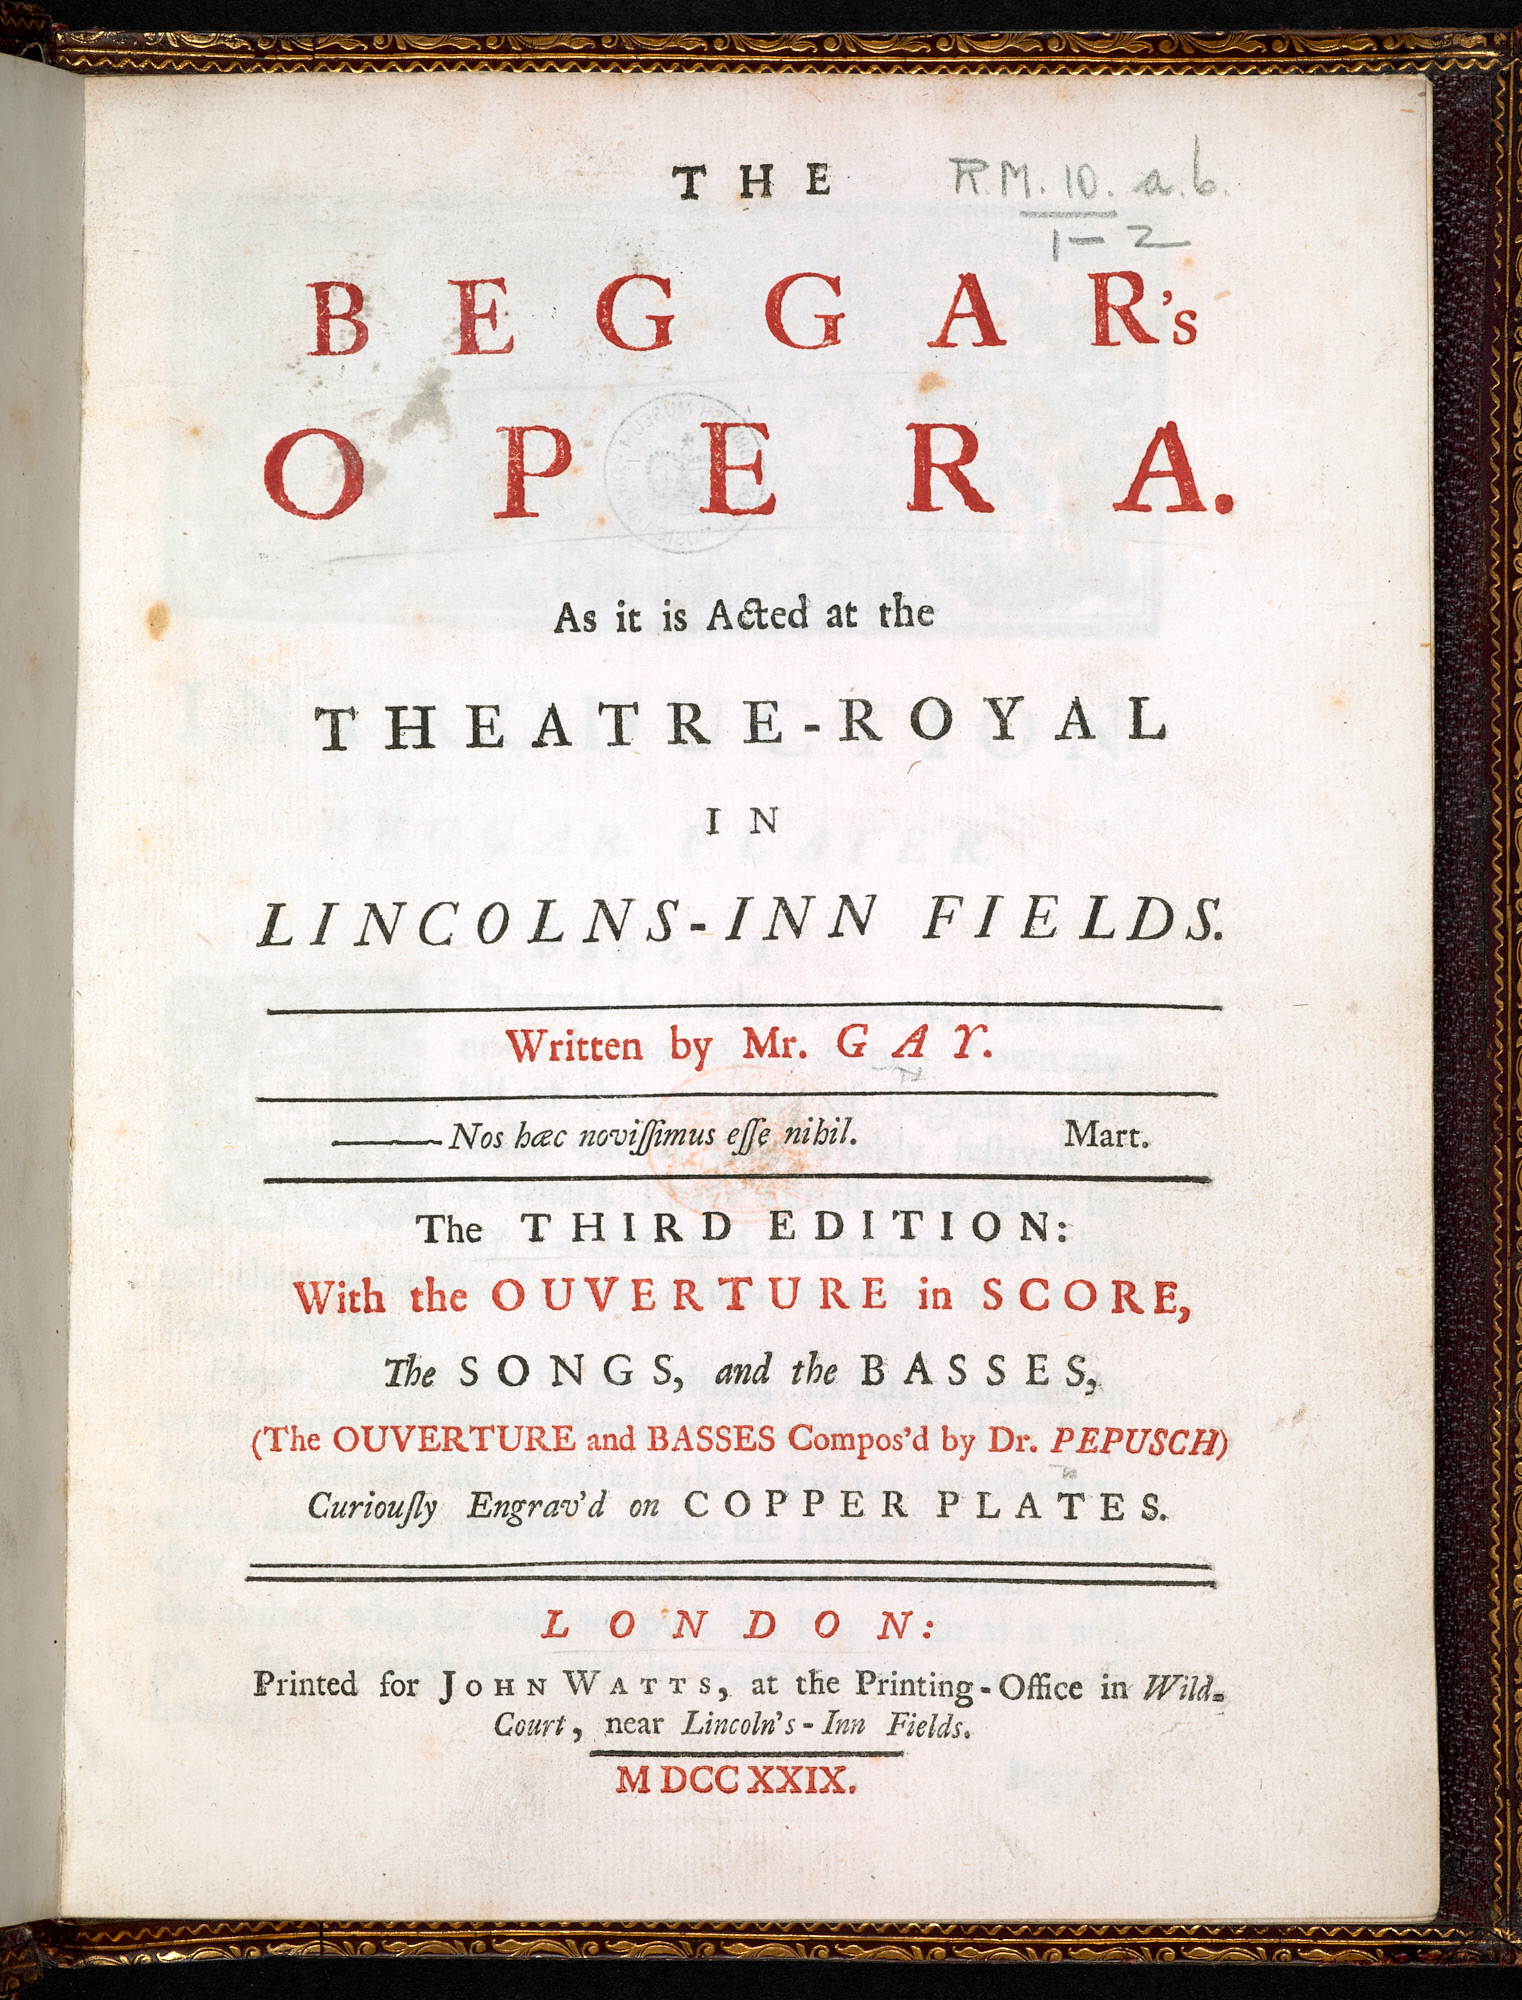 Third edition of The Beggar's Opera by John Gay, 1729